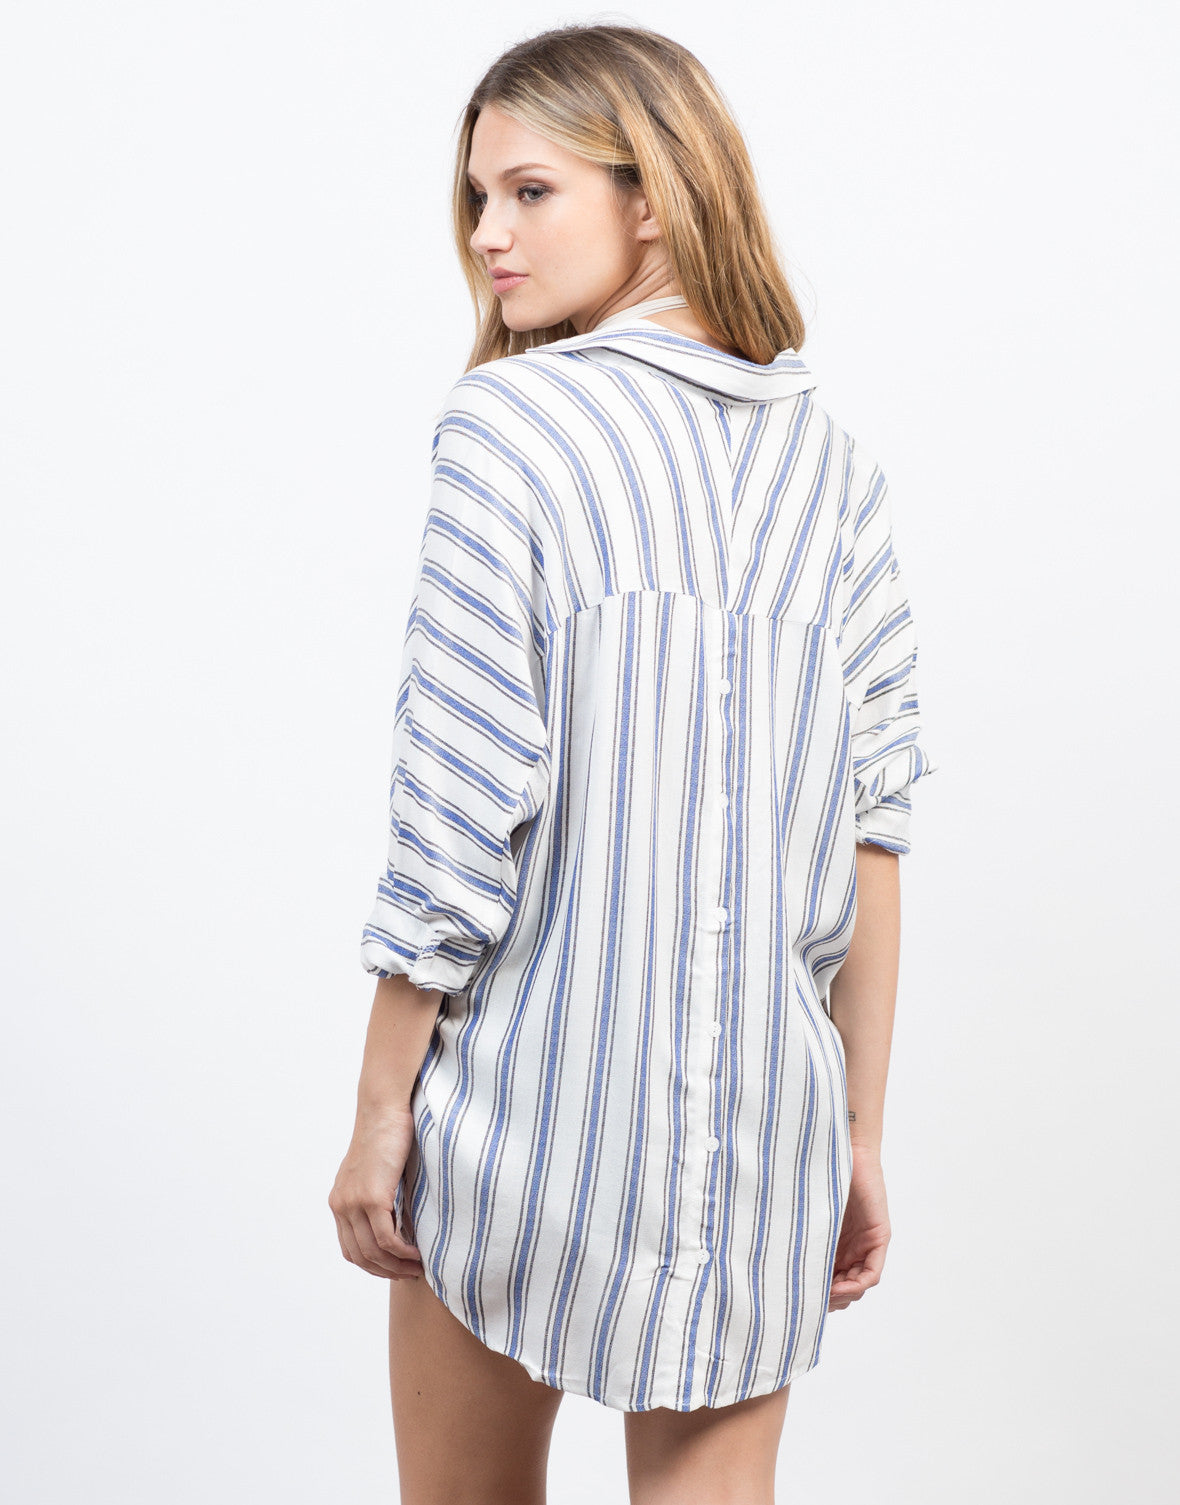 Back View of Woven Striped Blouse